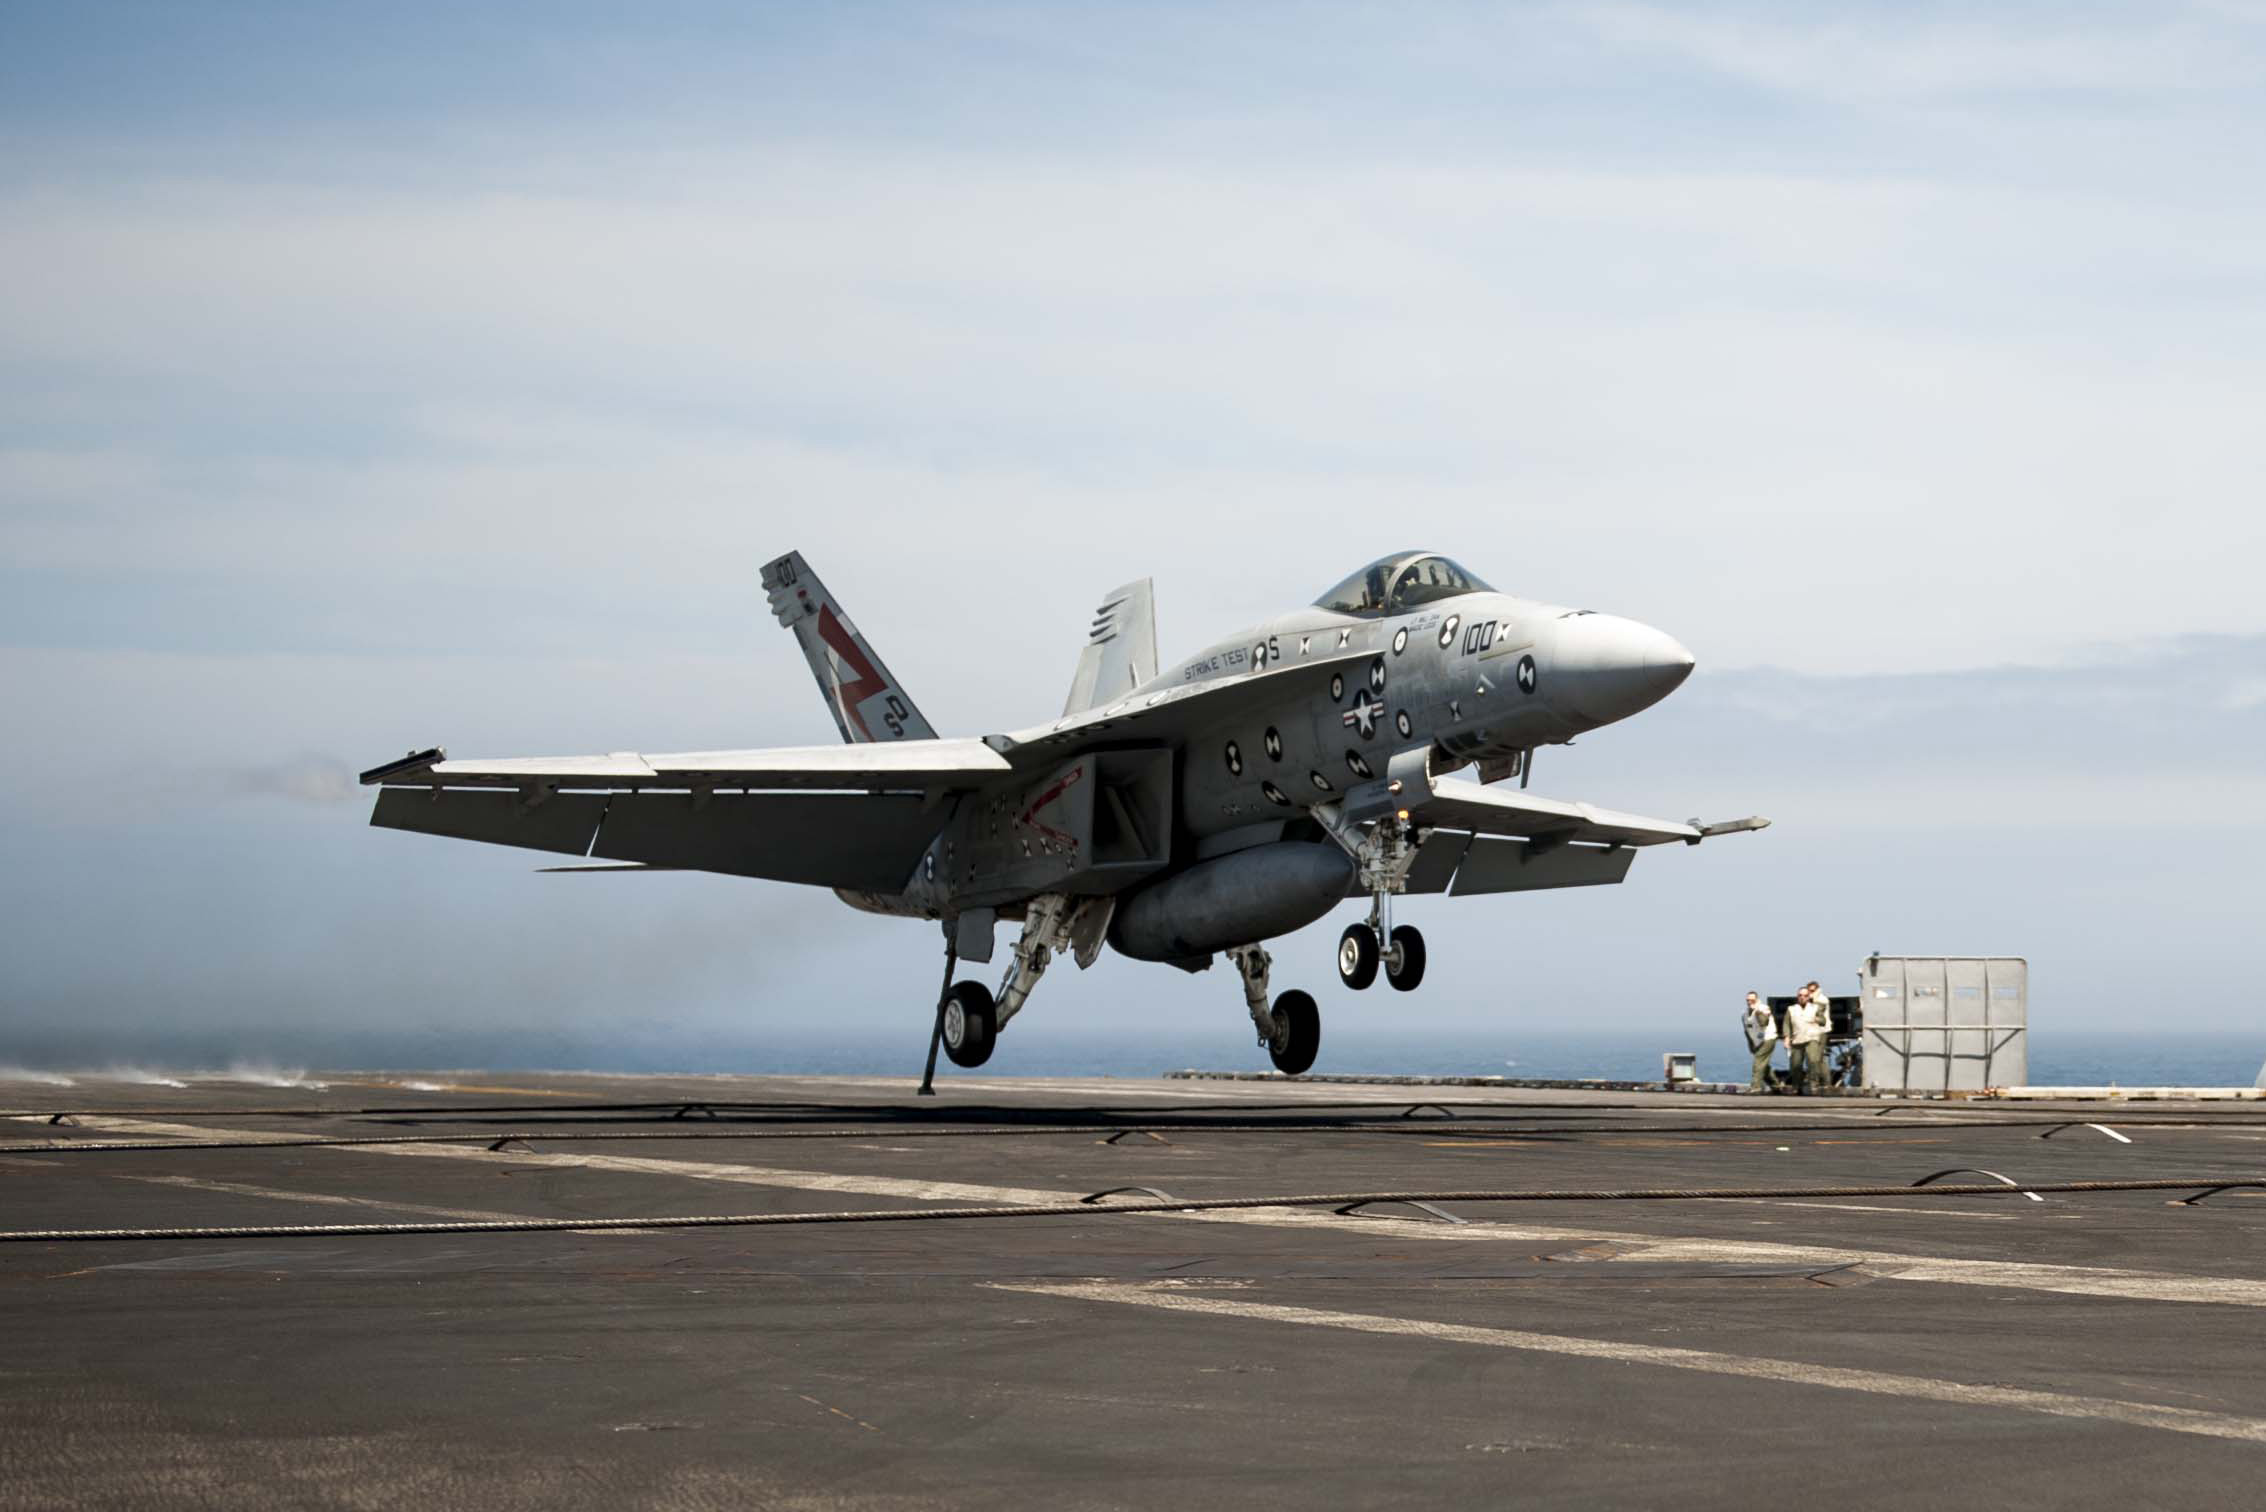 """Salty Dog 100,"" an F/A-18F Super Hornet assigned to Air Test and Evaluation Squadron (VX) 23 at Naval Air Station Patuxent River, Md., lands on USS George H. W. Bush (CVN 77) Apr. 20, 2015. The landing was part of the first sea trials for MAGIC CARPET, new flight control software and display symbology for F/A-18 aircraft designed to make carrier landings less demanding for Navy pilots. US Navy photo."